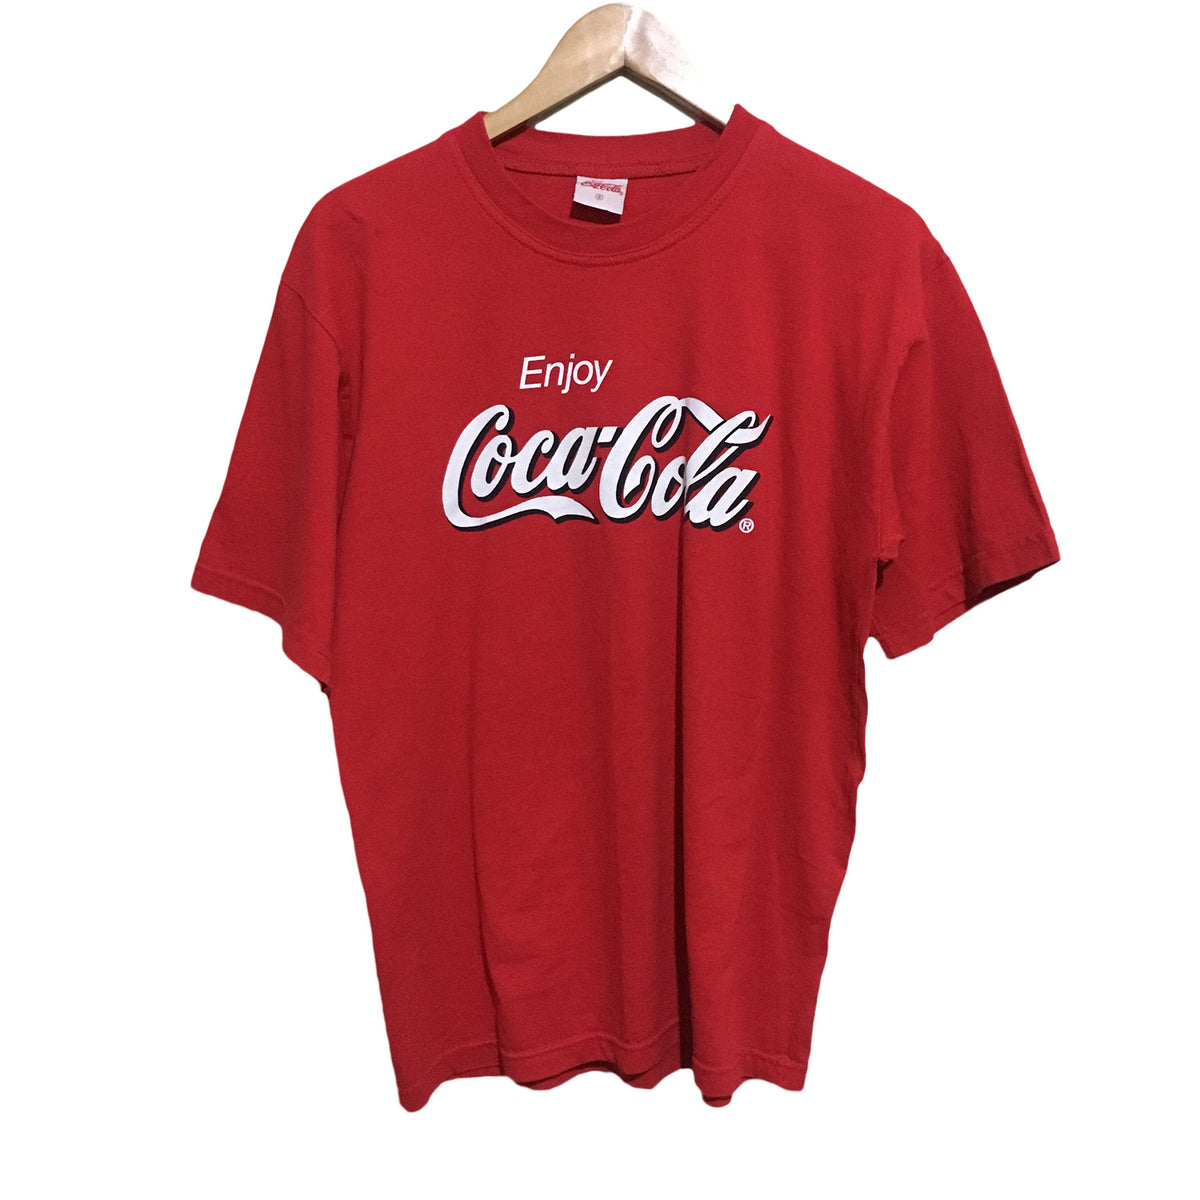 Enjoy Coca-Cola T-Shirt Mens Small